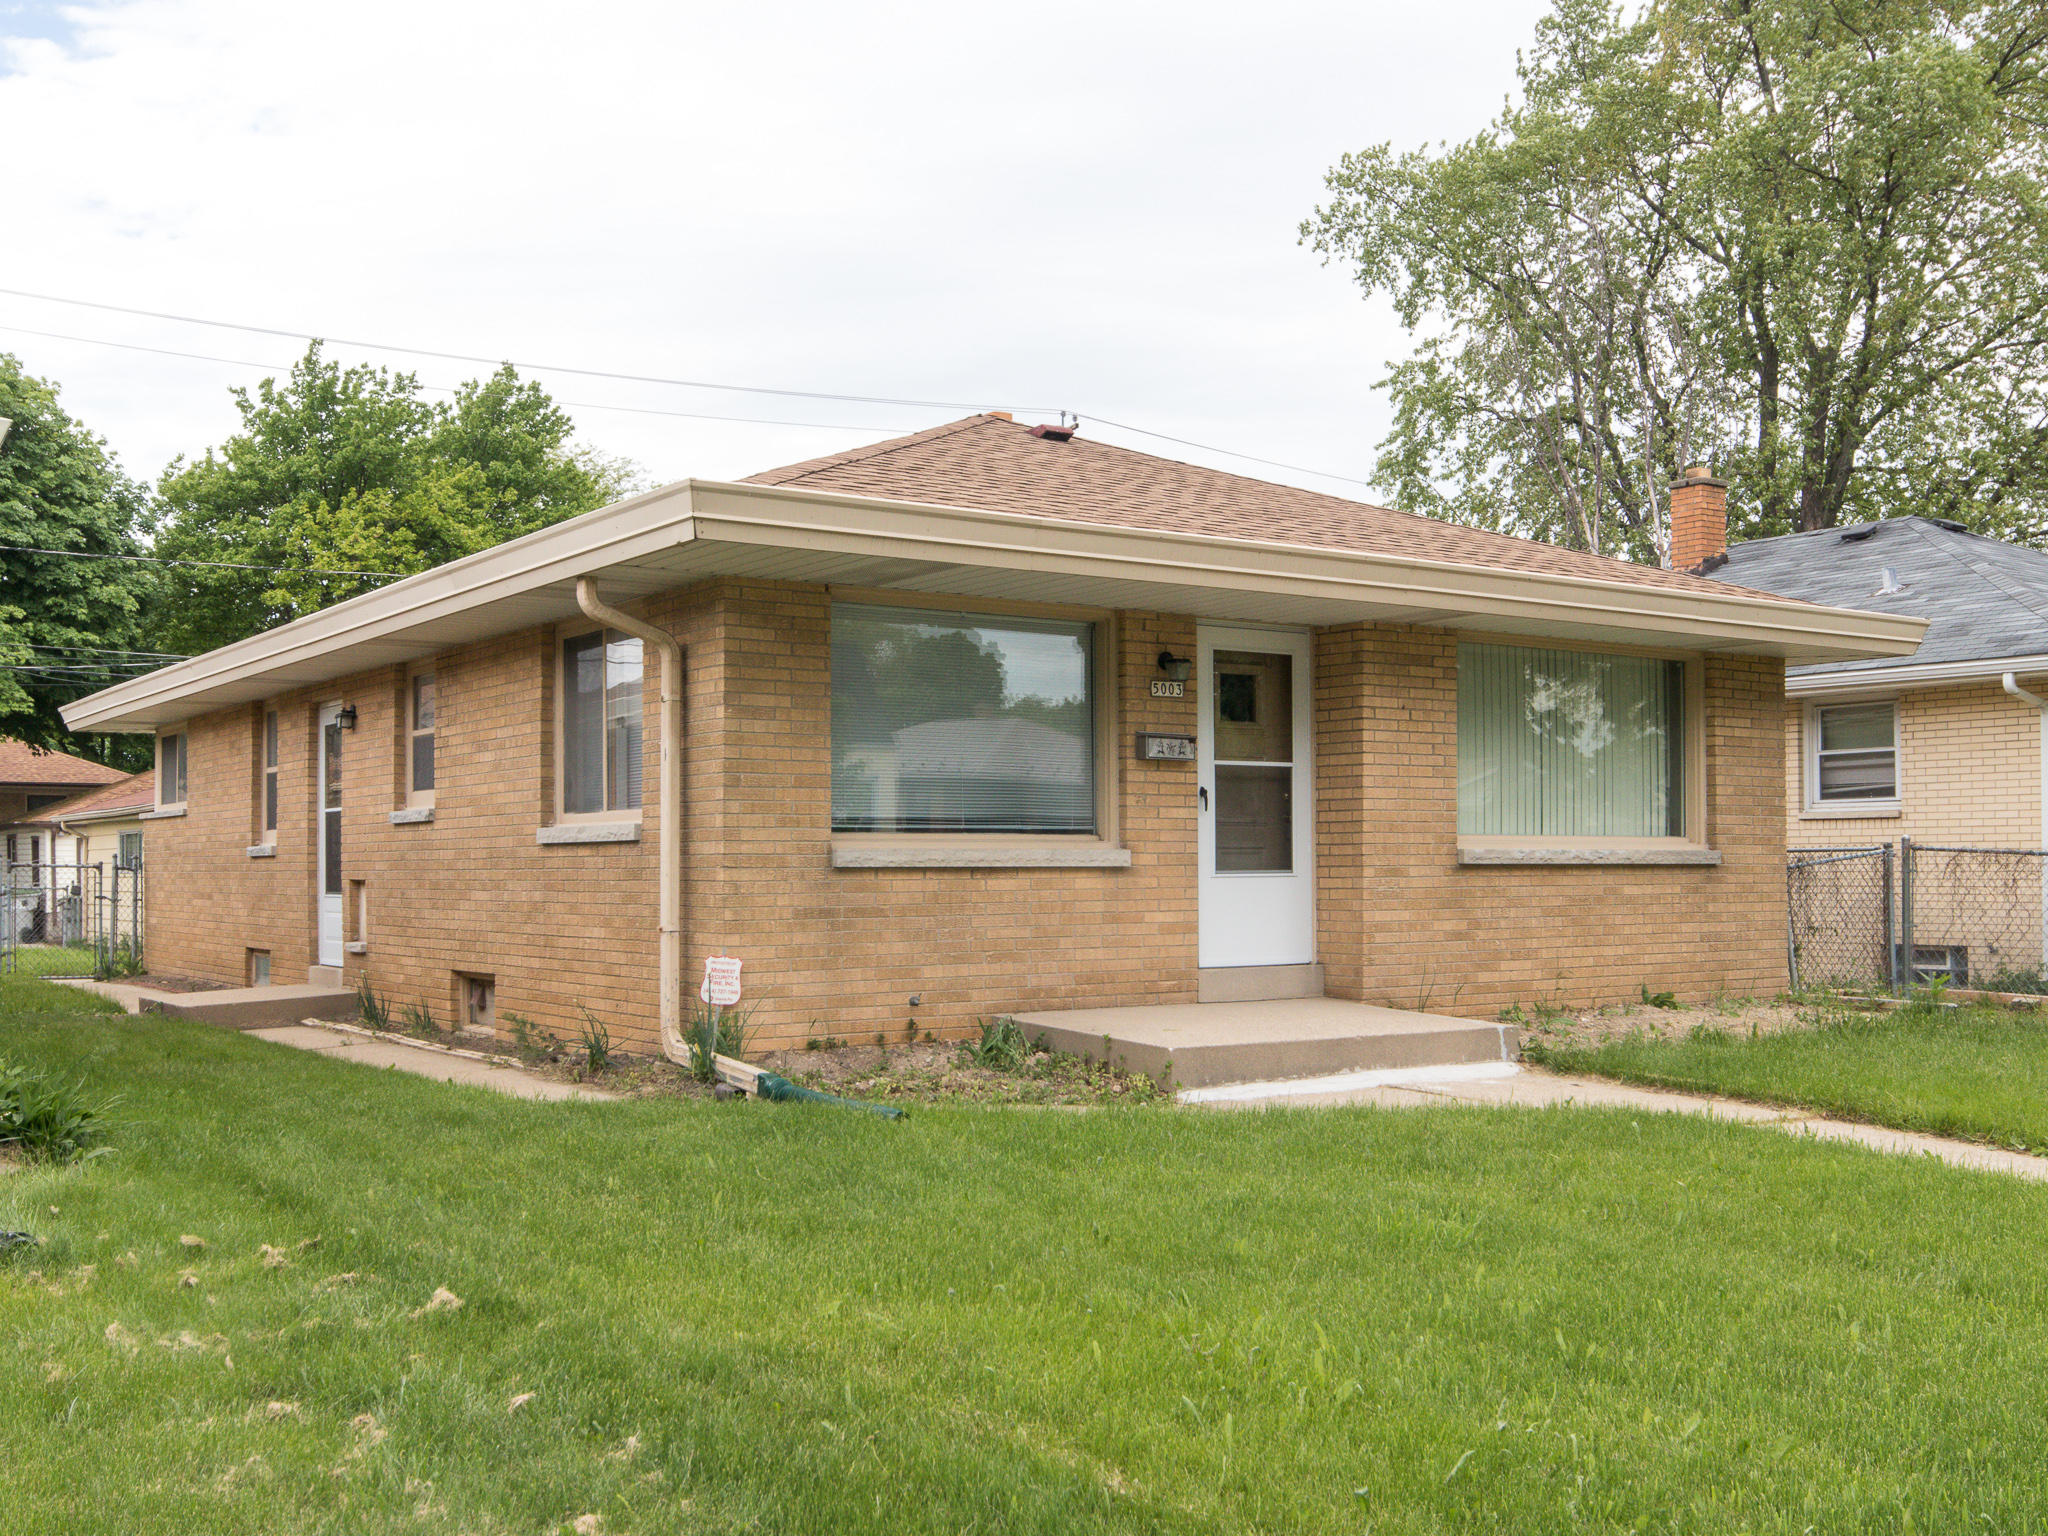 5003 67th St, Milwaukee, Wisconsin 53218, 3 Bedrooms Bedrooms, 6 Rooms Rooms,1 BathroomBathrooms,Single-Family,For Sale,67th St,1691464